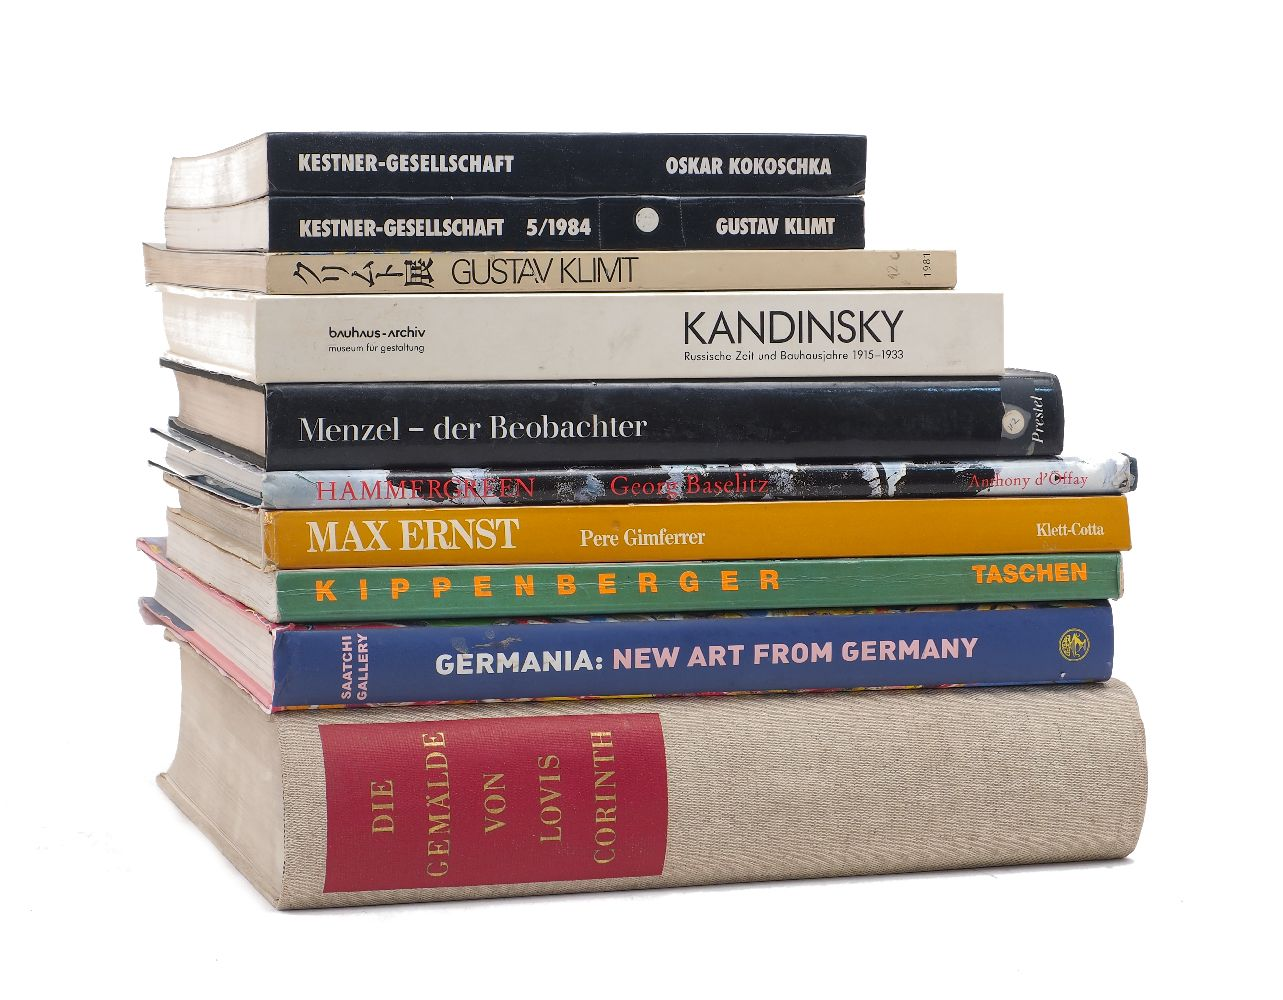 A collection of 20th Century art reference publications pertaining to German art, artists, and art